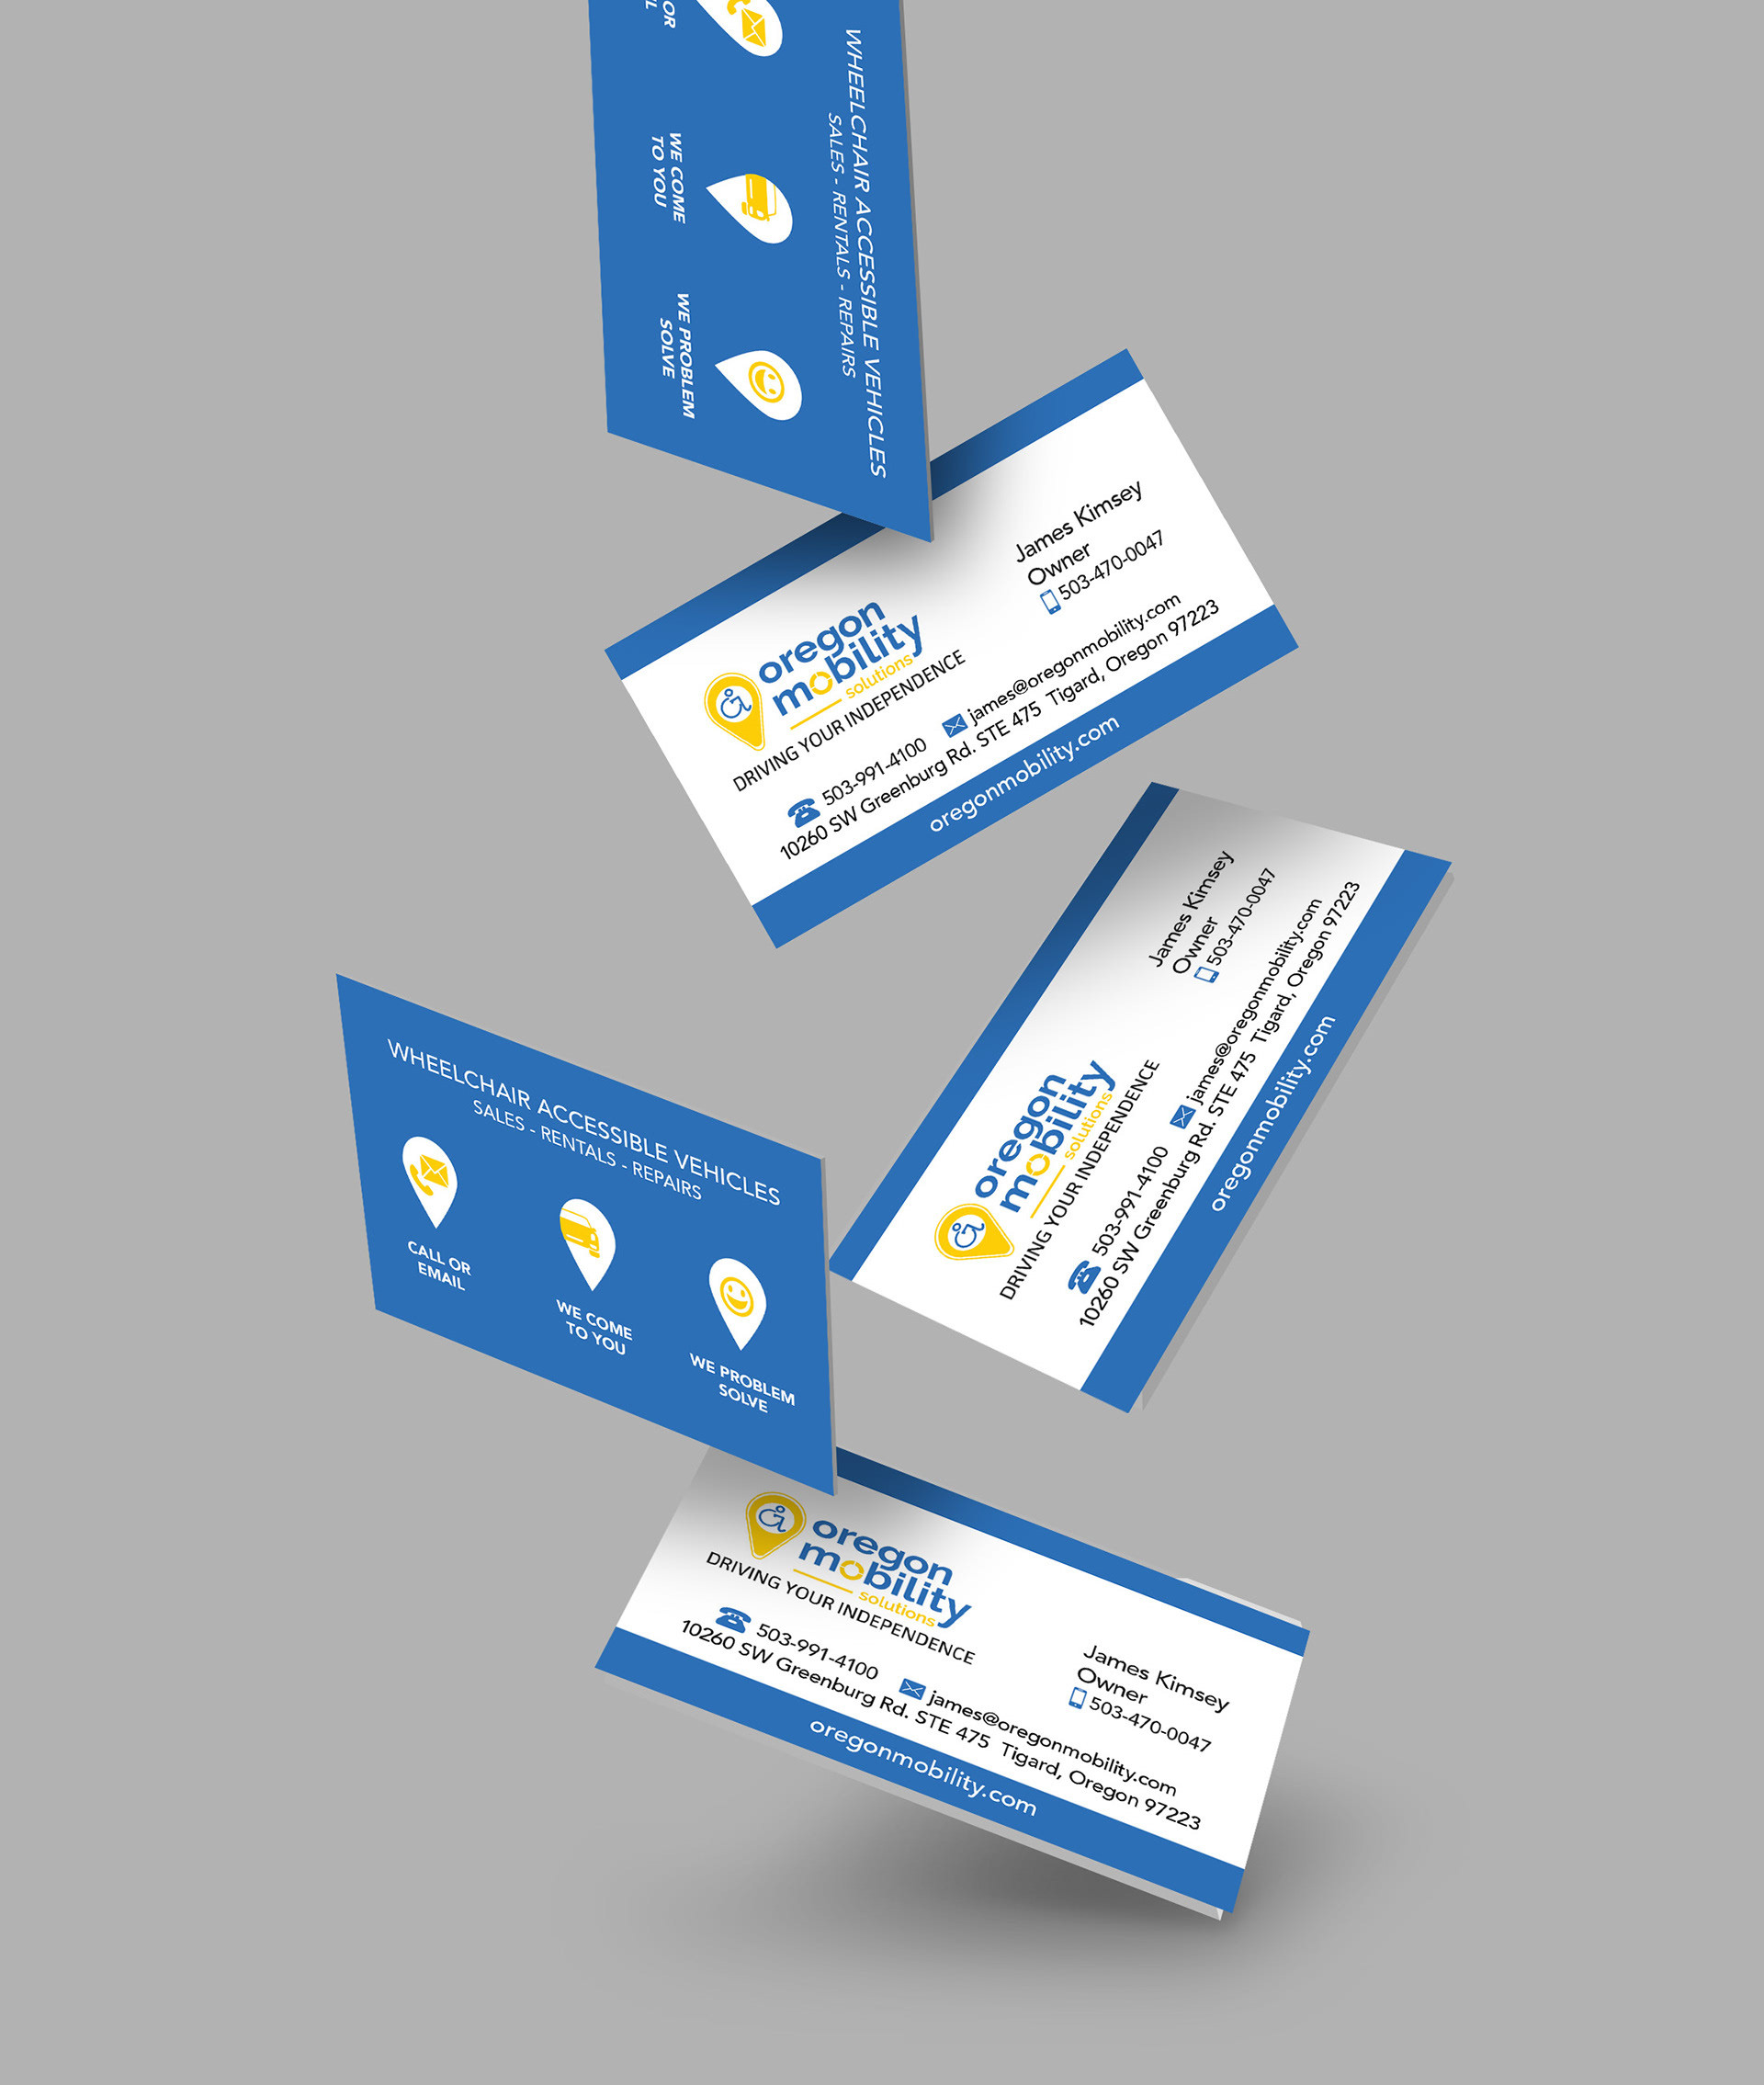 Oregon Mobility Business Cards